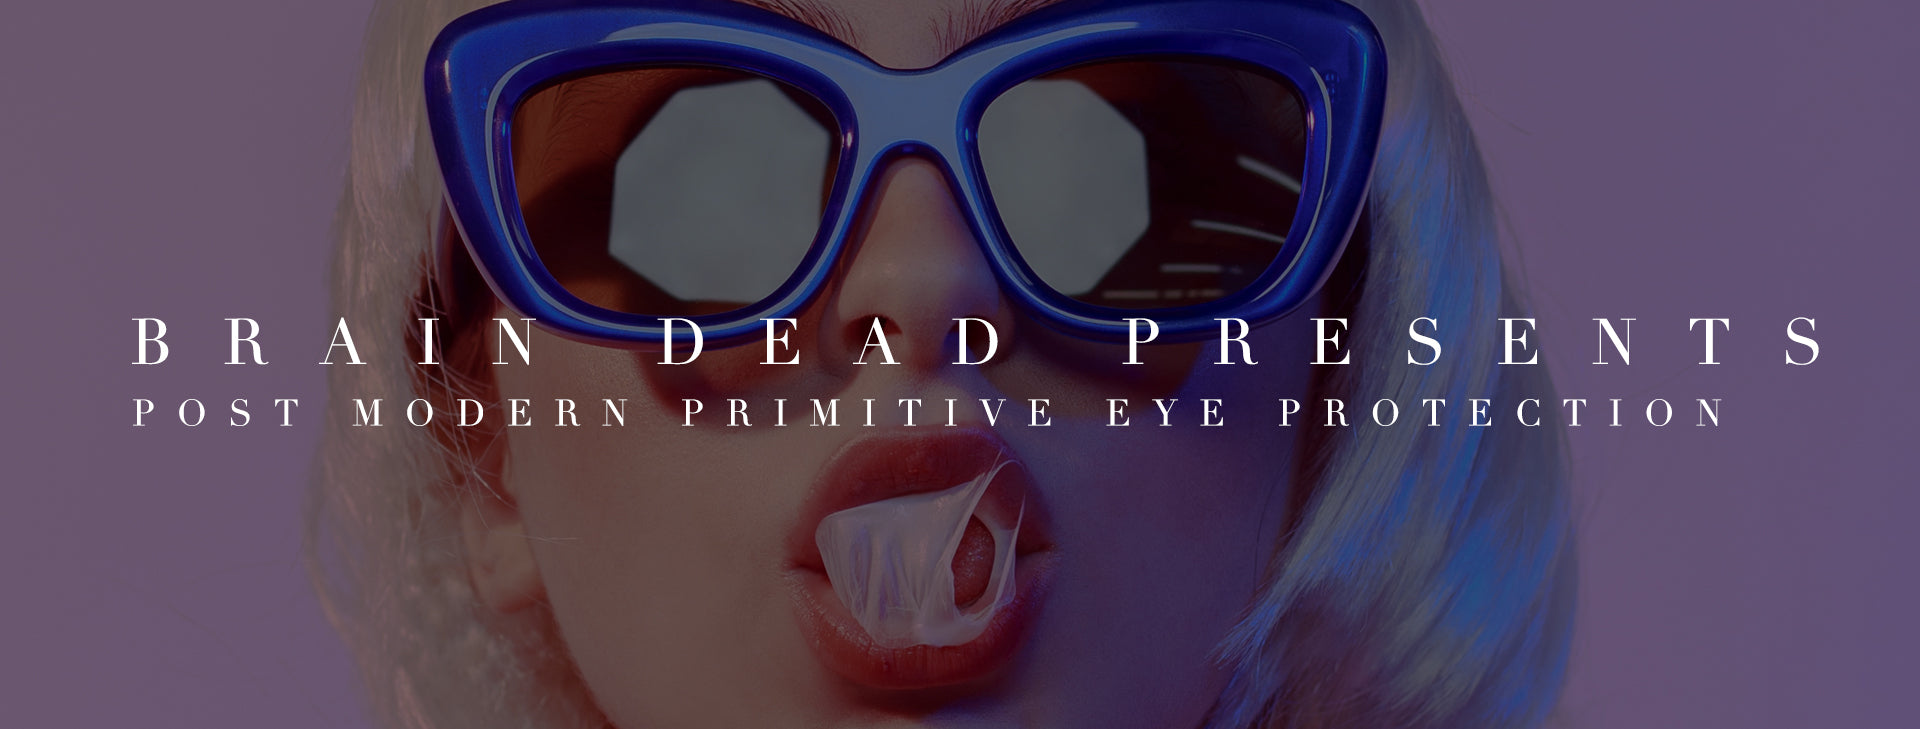 Brain Dead Presents: Post Modern Primitive Eye Protection